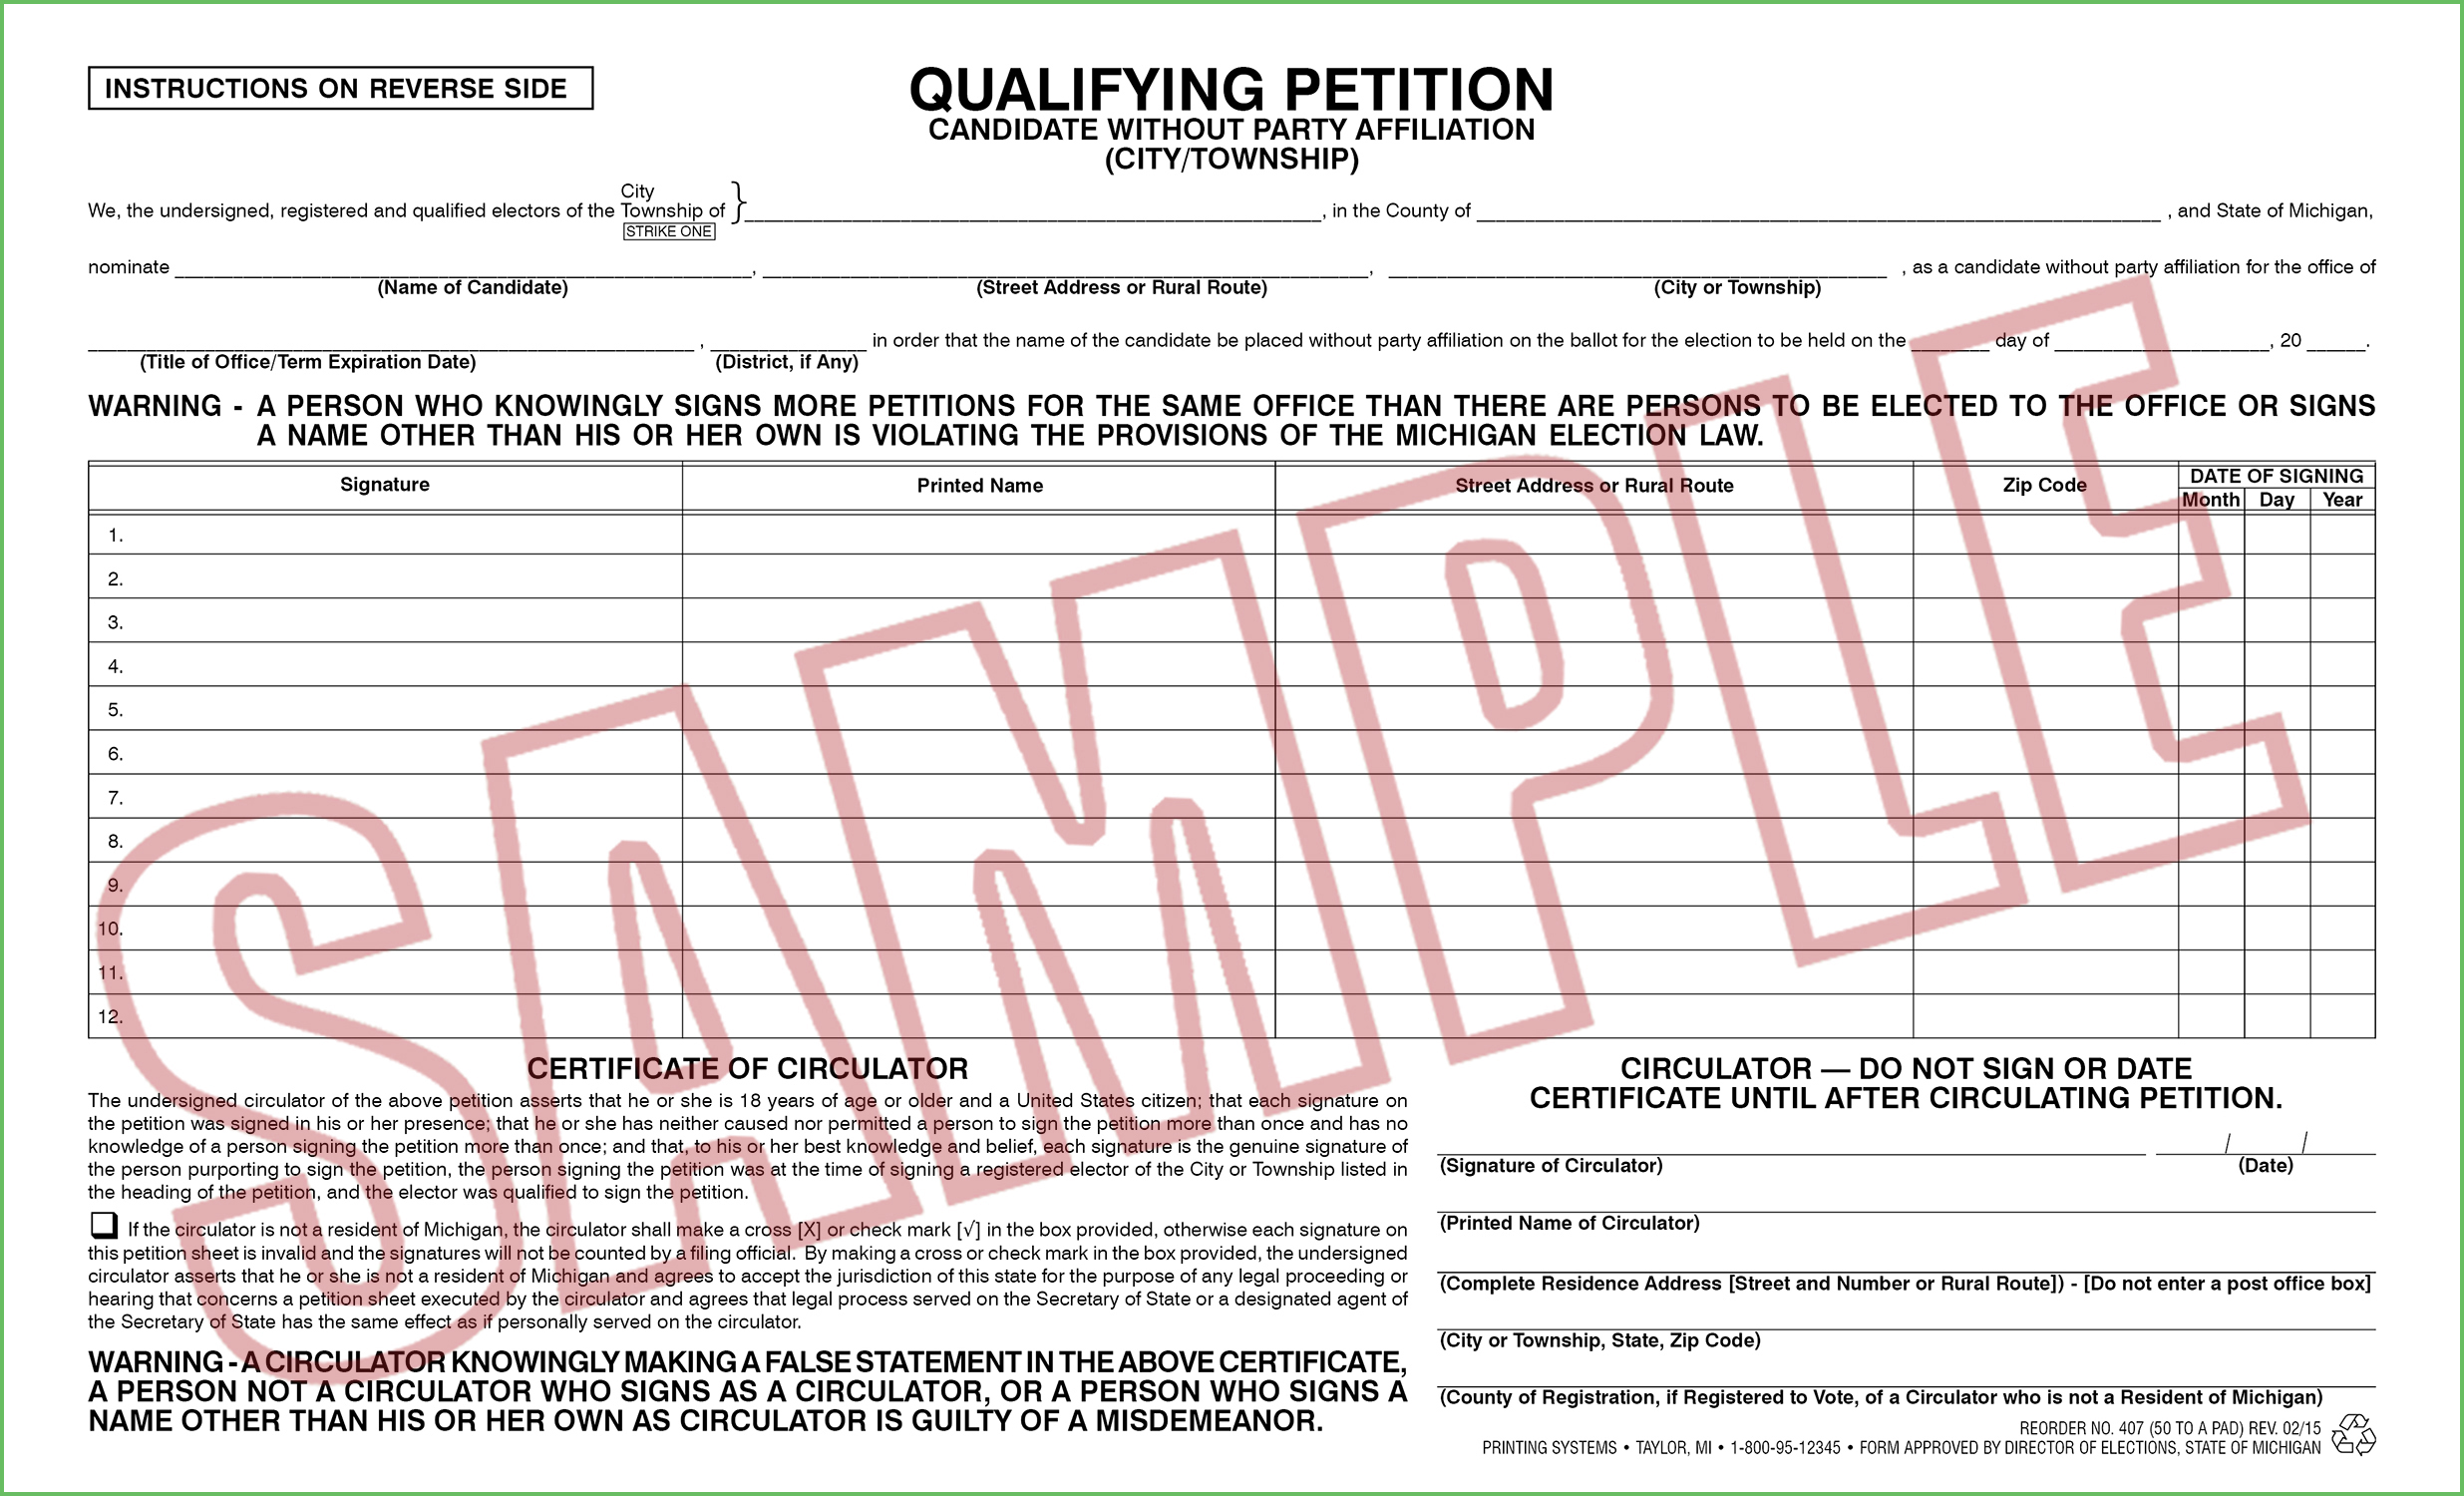 407 Qualifying Petition (Ci/Twp) Candidate w/o Party Affiliation (50 per pad)